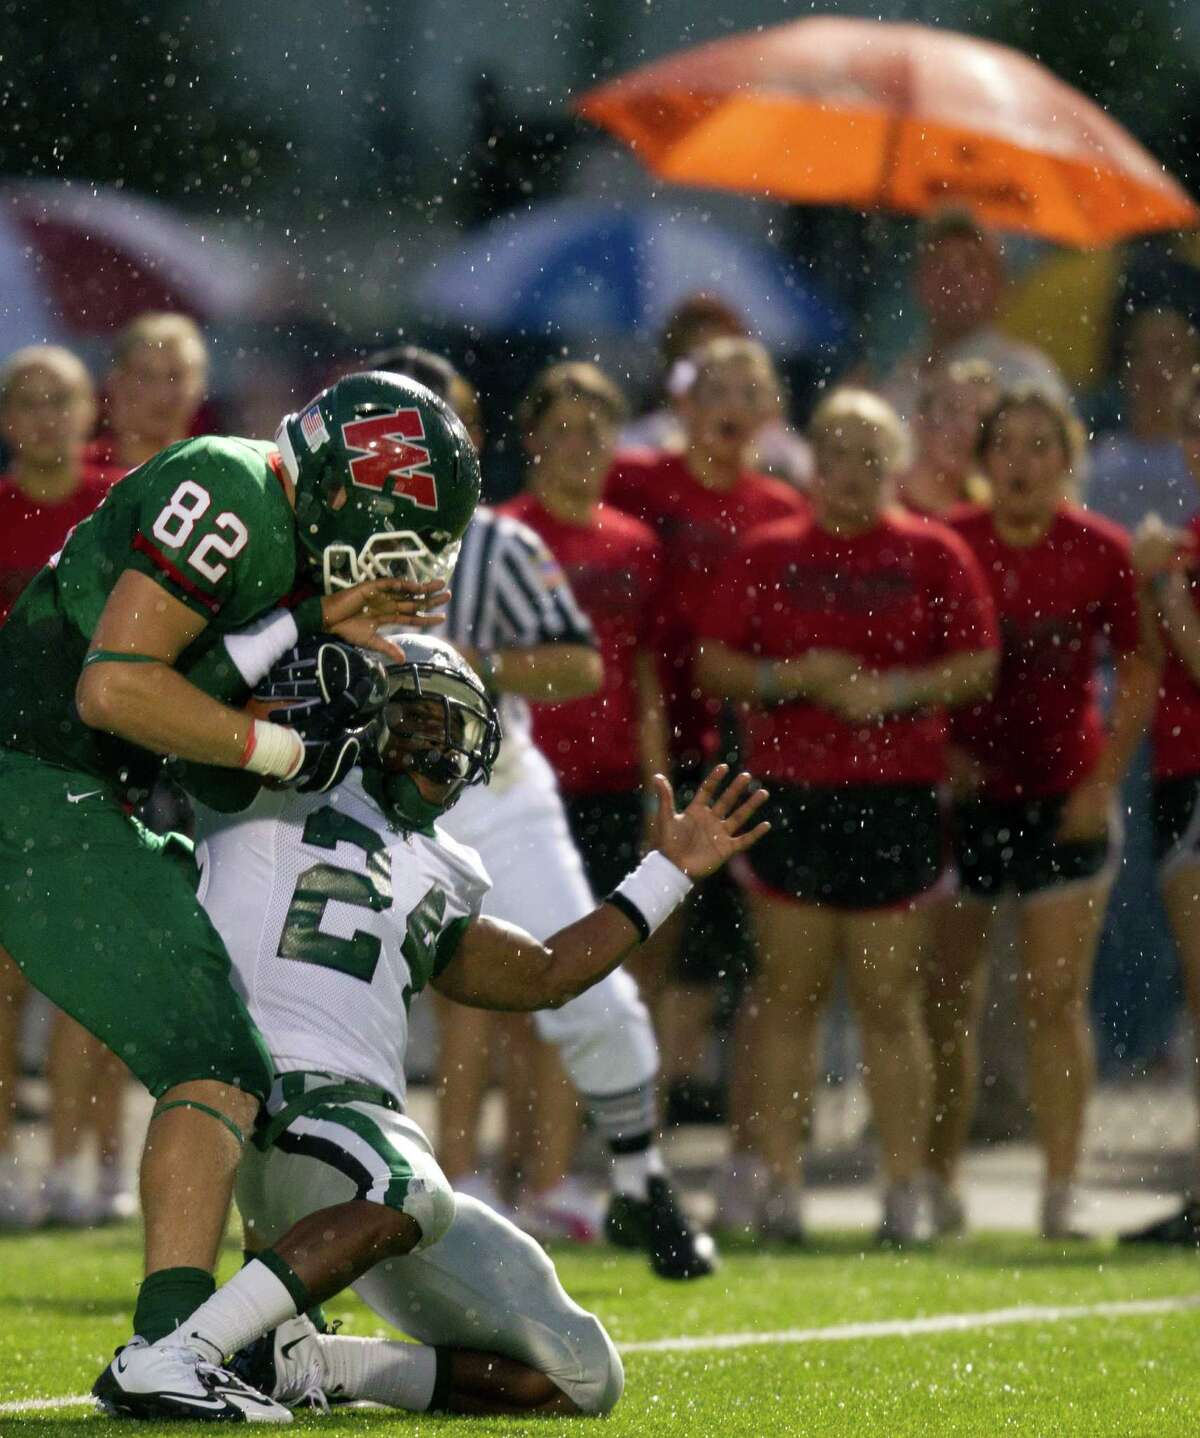 The Woodlands' Michael Cooper (82) wrestles the ball away from Hightower's Davin Simon (24) to score on a two-point conversion as rain falls on the first half in high school football action at Woodforest Stadium Friday, Sept. 3, 2010, in Shenandoah.